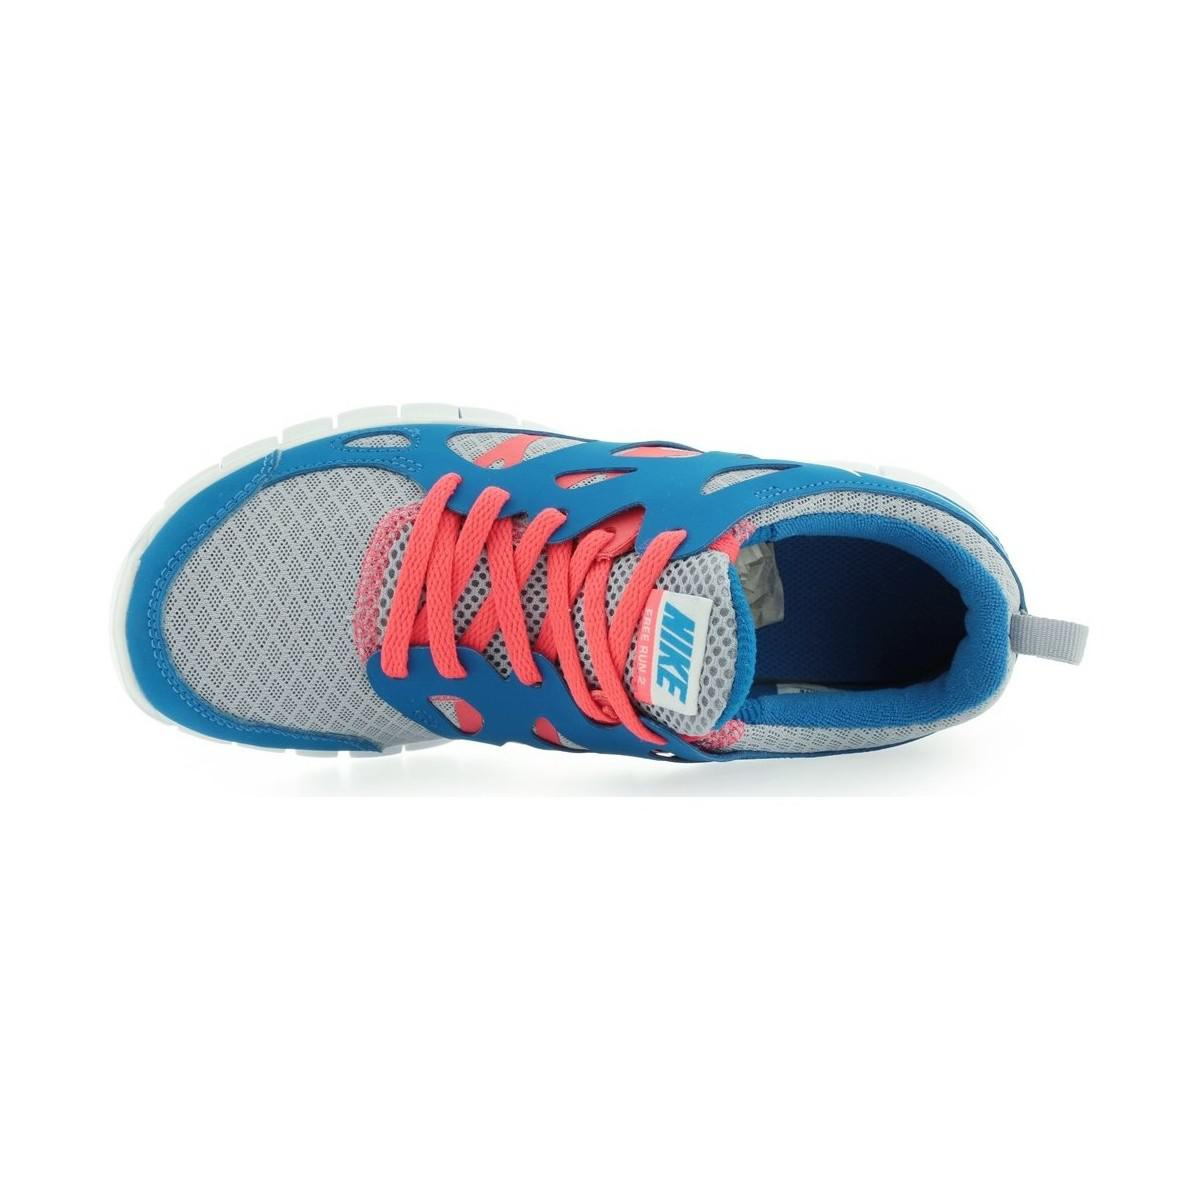 1f28a2a8281 nike-blue-Free-Run-2-Gs-Wolf-Grey-White-Laser-Crimson-Womens-Shoes -trainers-In-Blue.jpeg